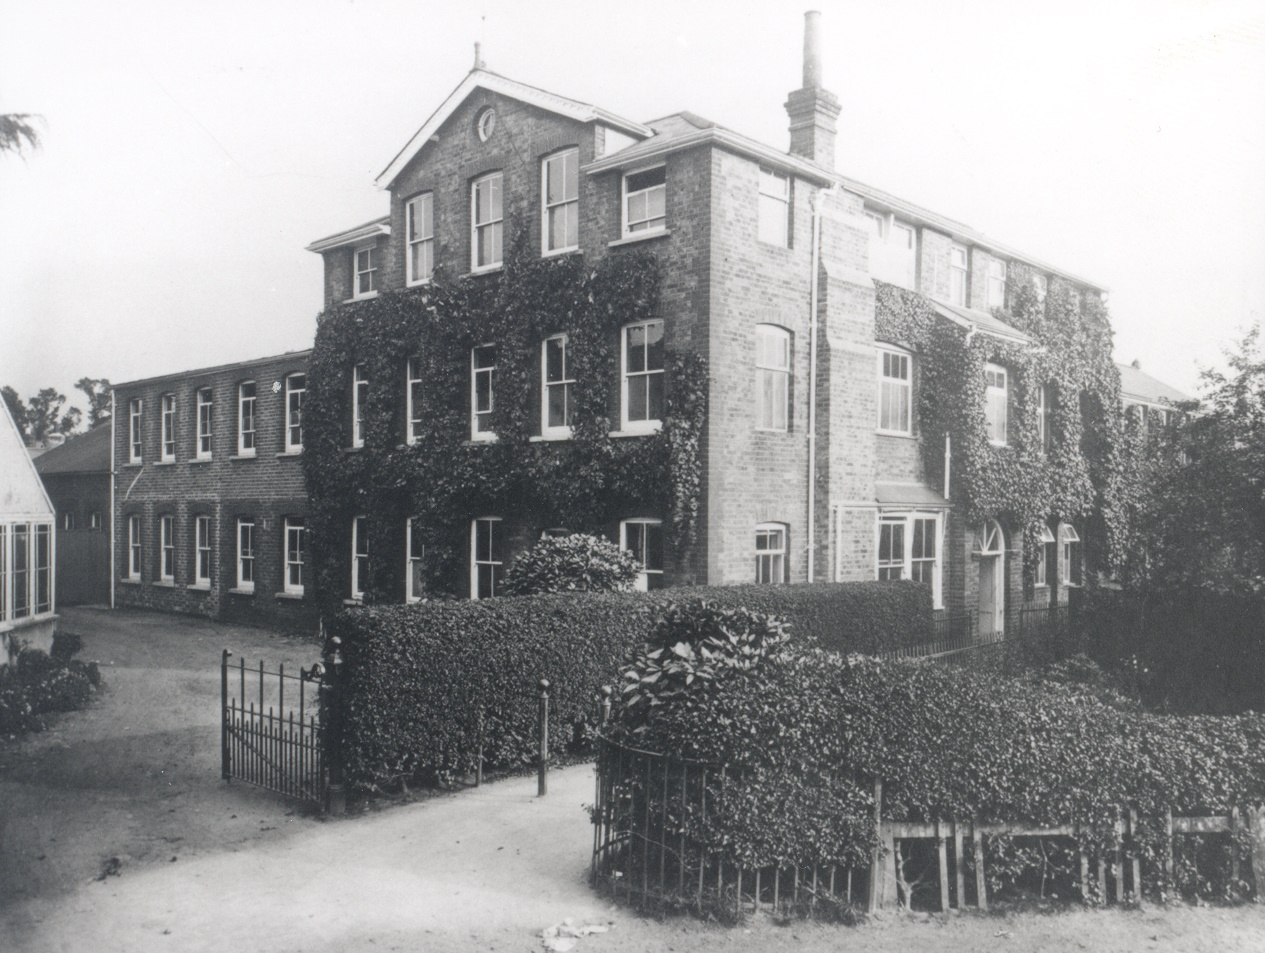 Black and white photograph of exterior view of the Claudius Ash Sons & Co. Ltd. works in Churchfield Road, Walton, showing ivy clad building behind neatly clipped hedge, c.1914.